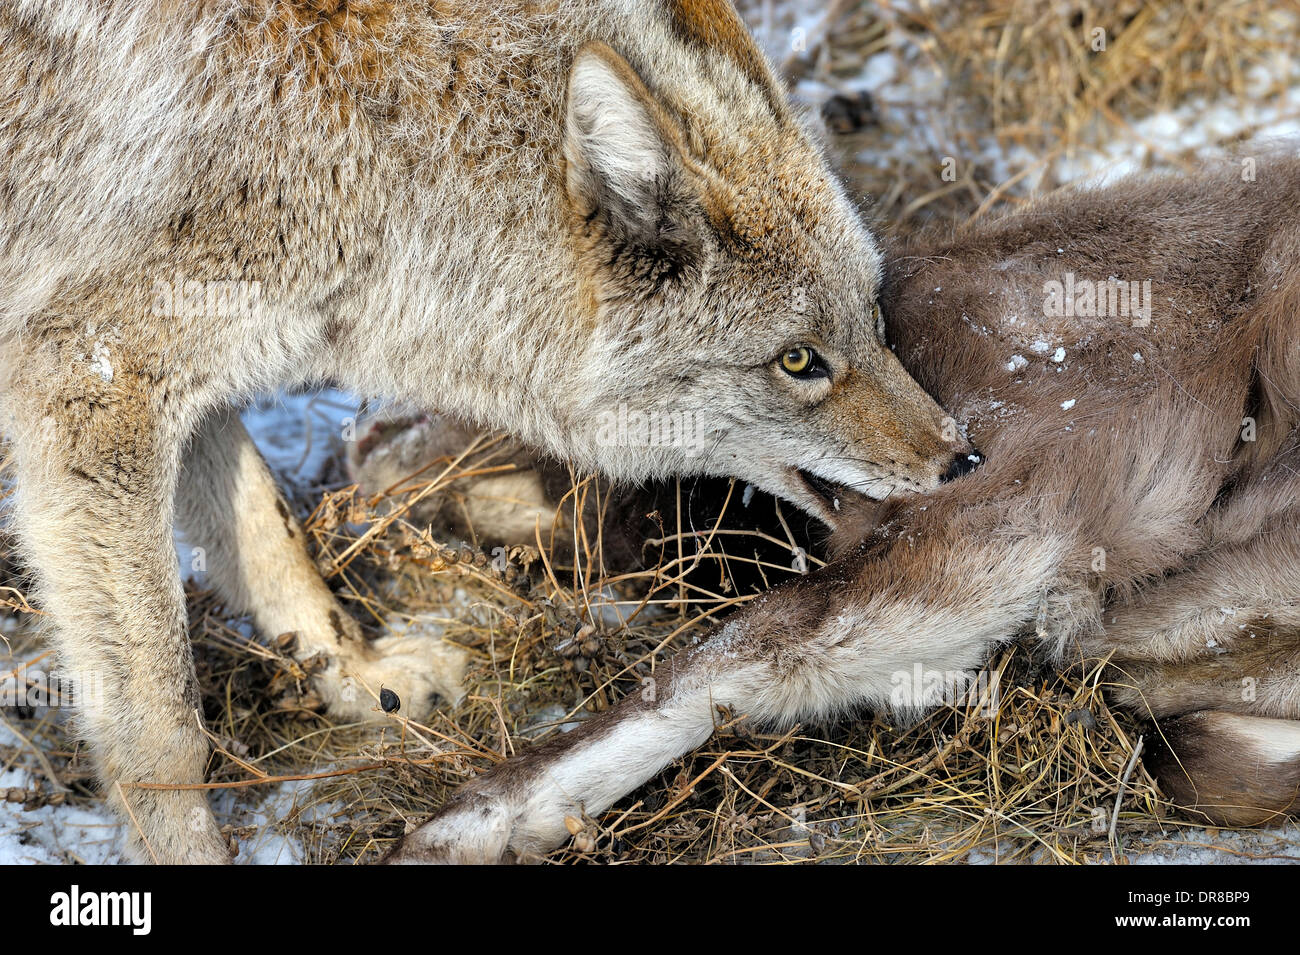 A coyote with a baby bighorn sheep that he has just killed for food. - Stock Image